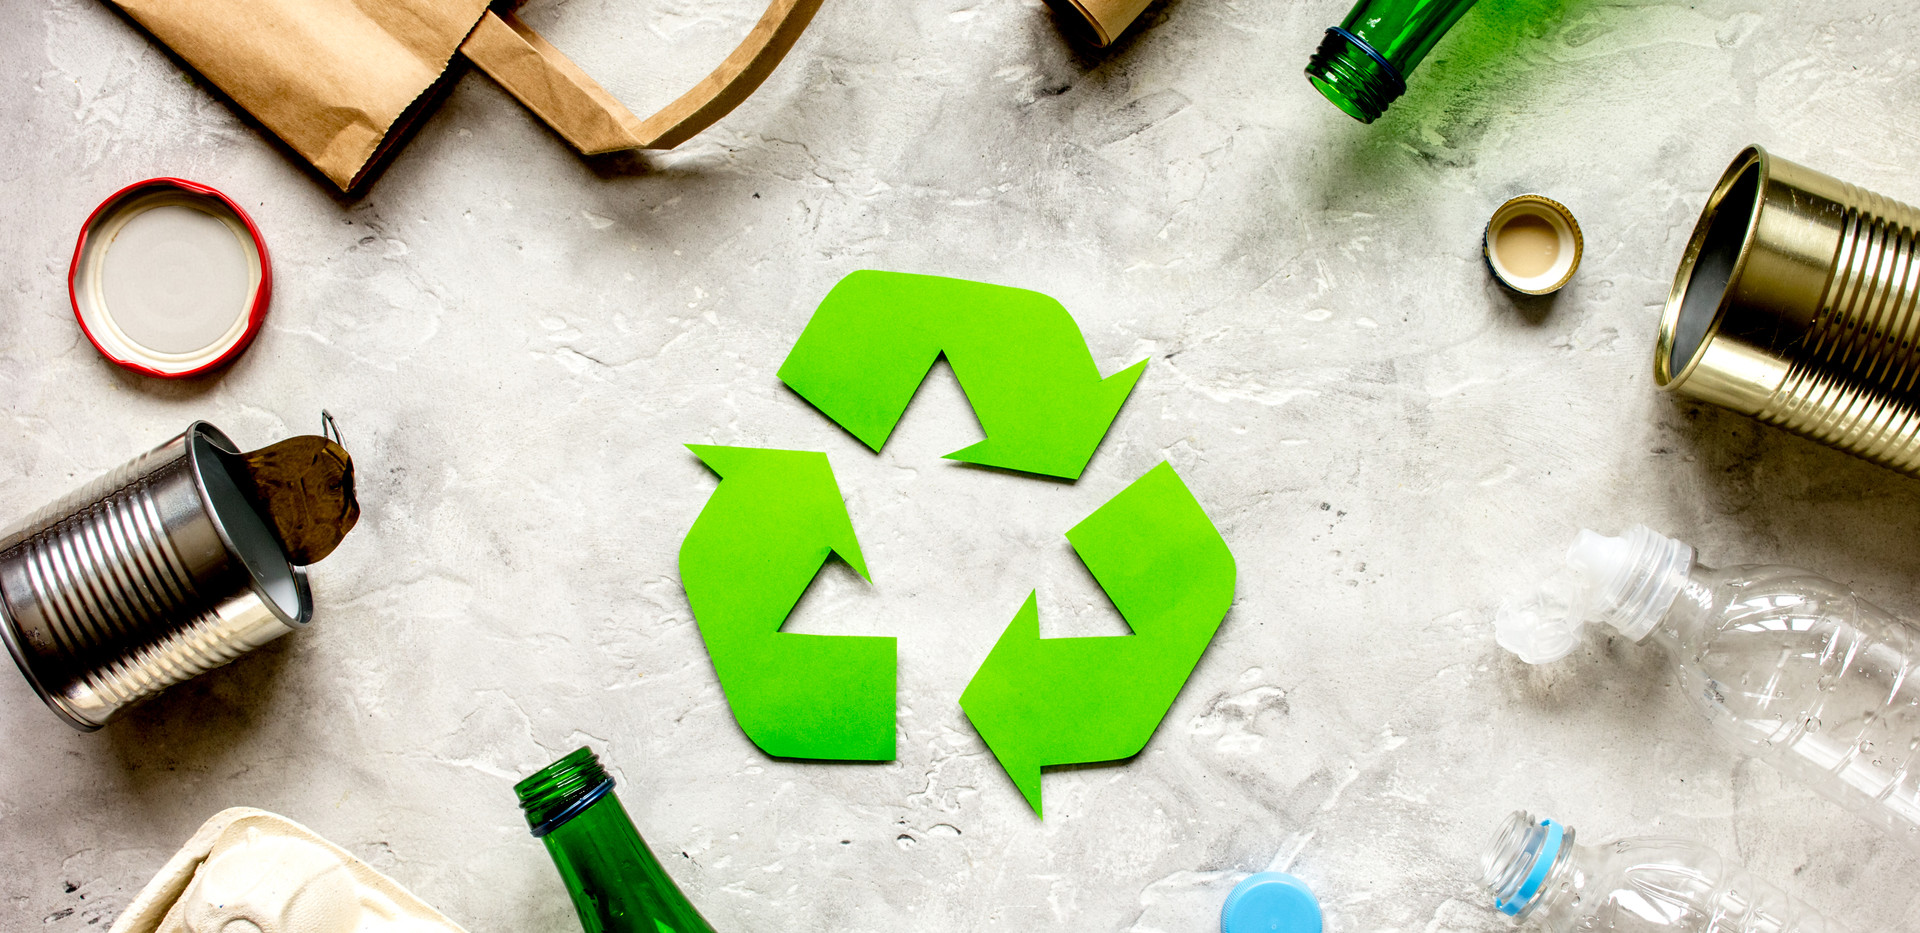 waste recycling symbol with garbage on s